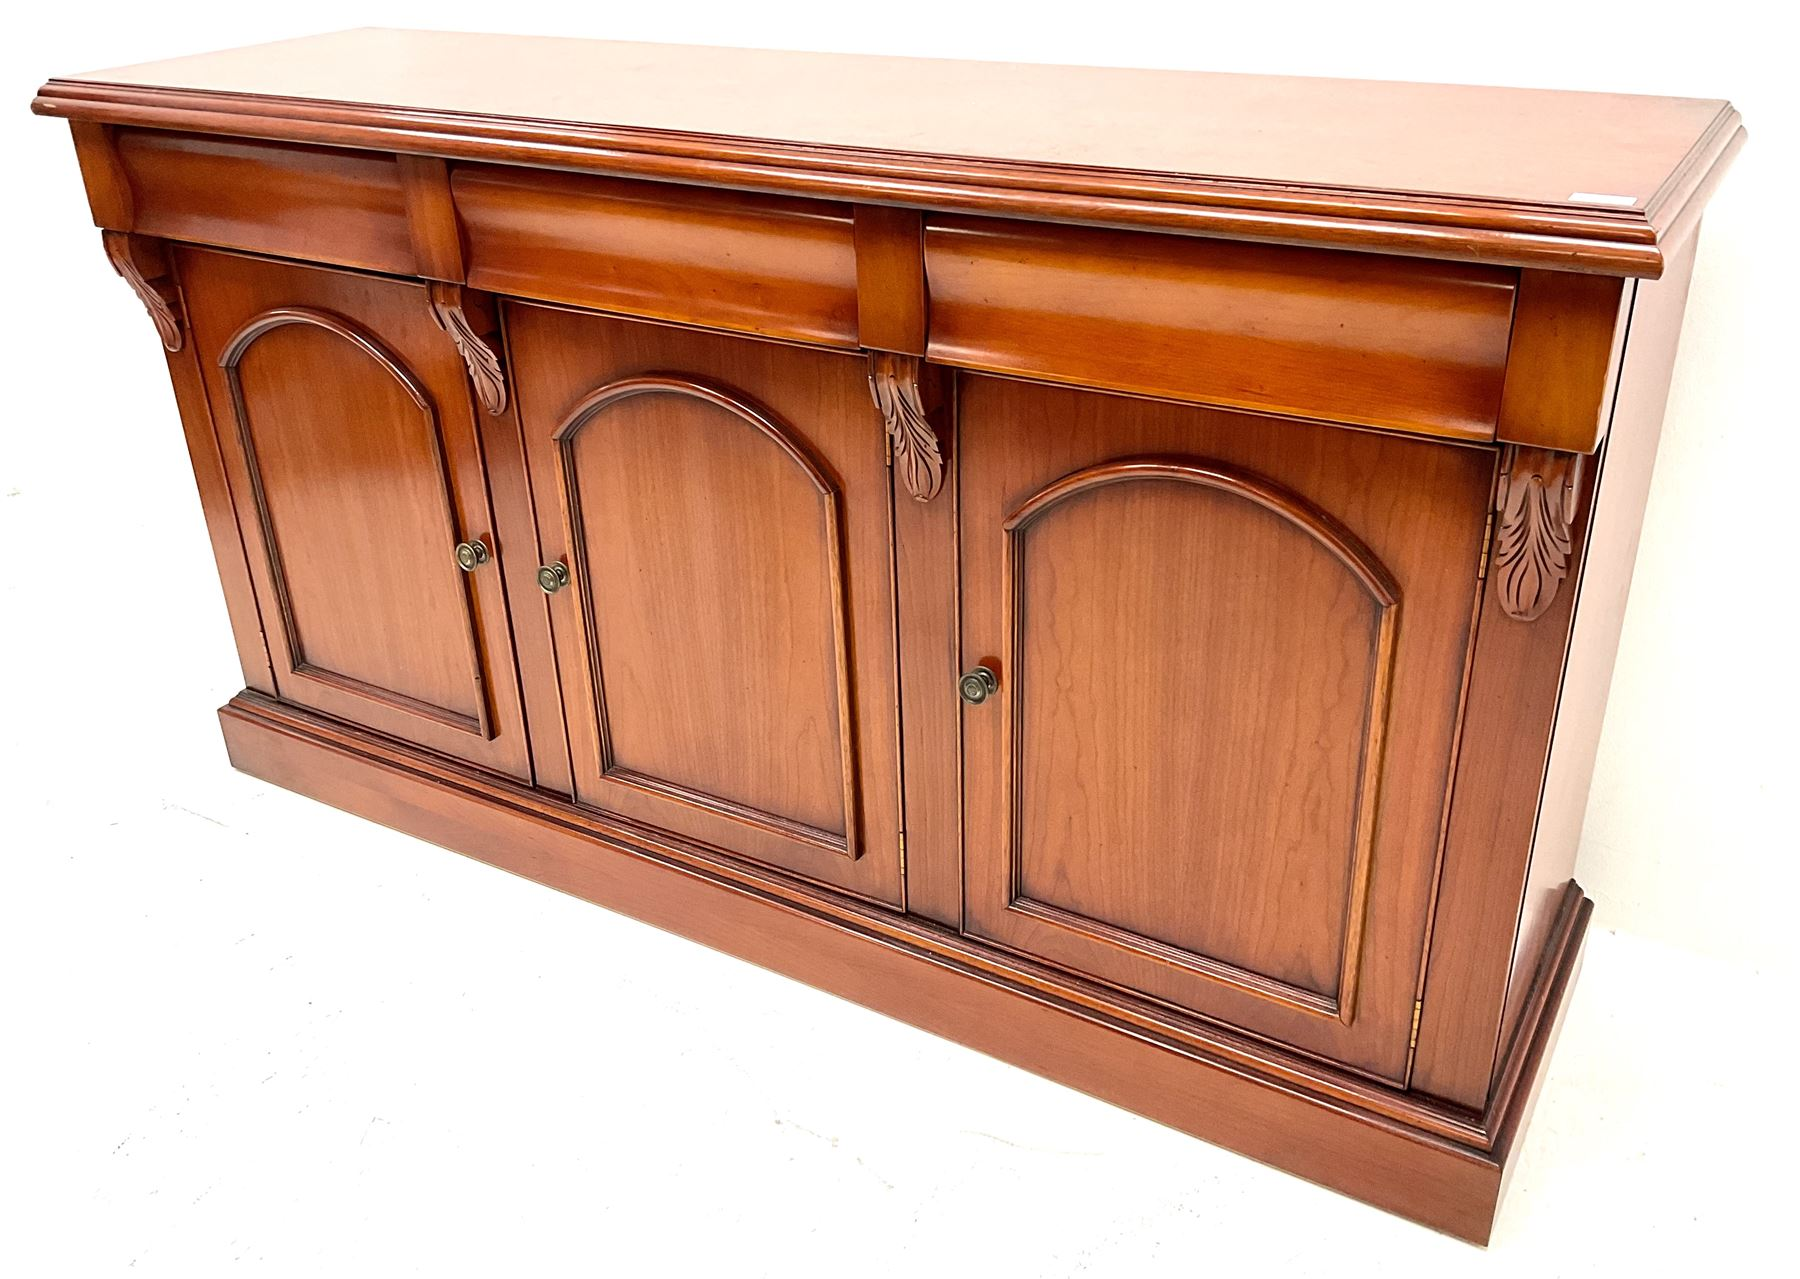 Waring & Gillow - cherry wood sideboard - Image 4 of 6